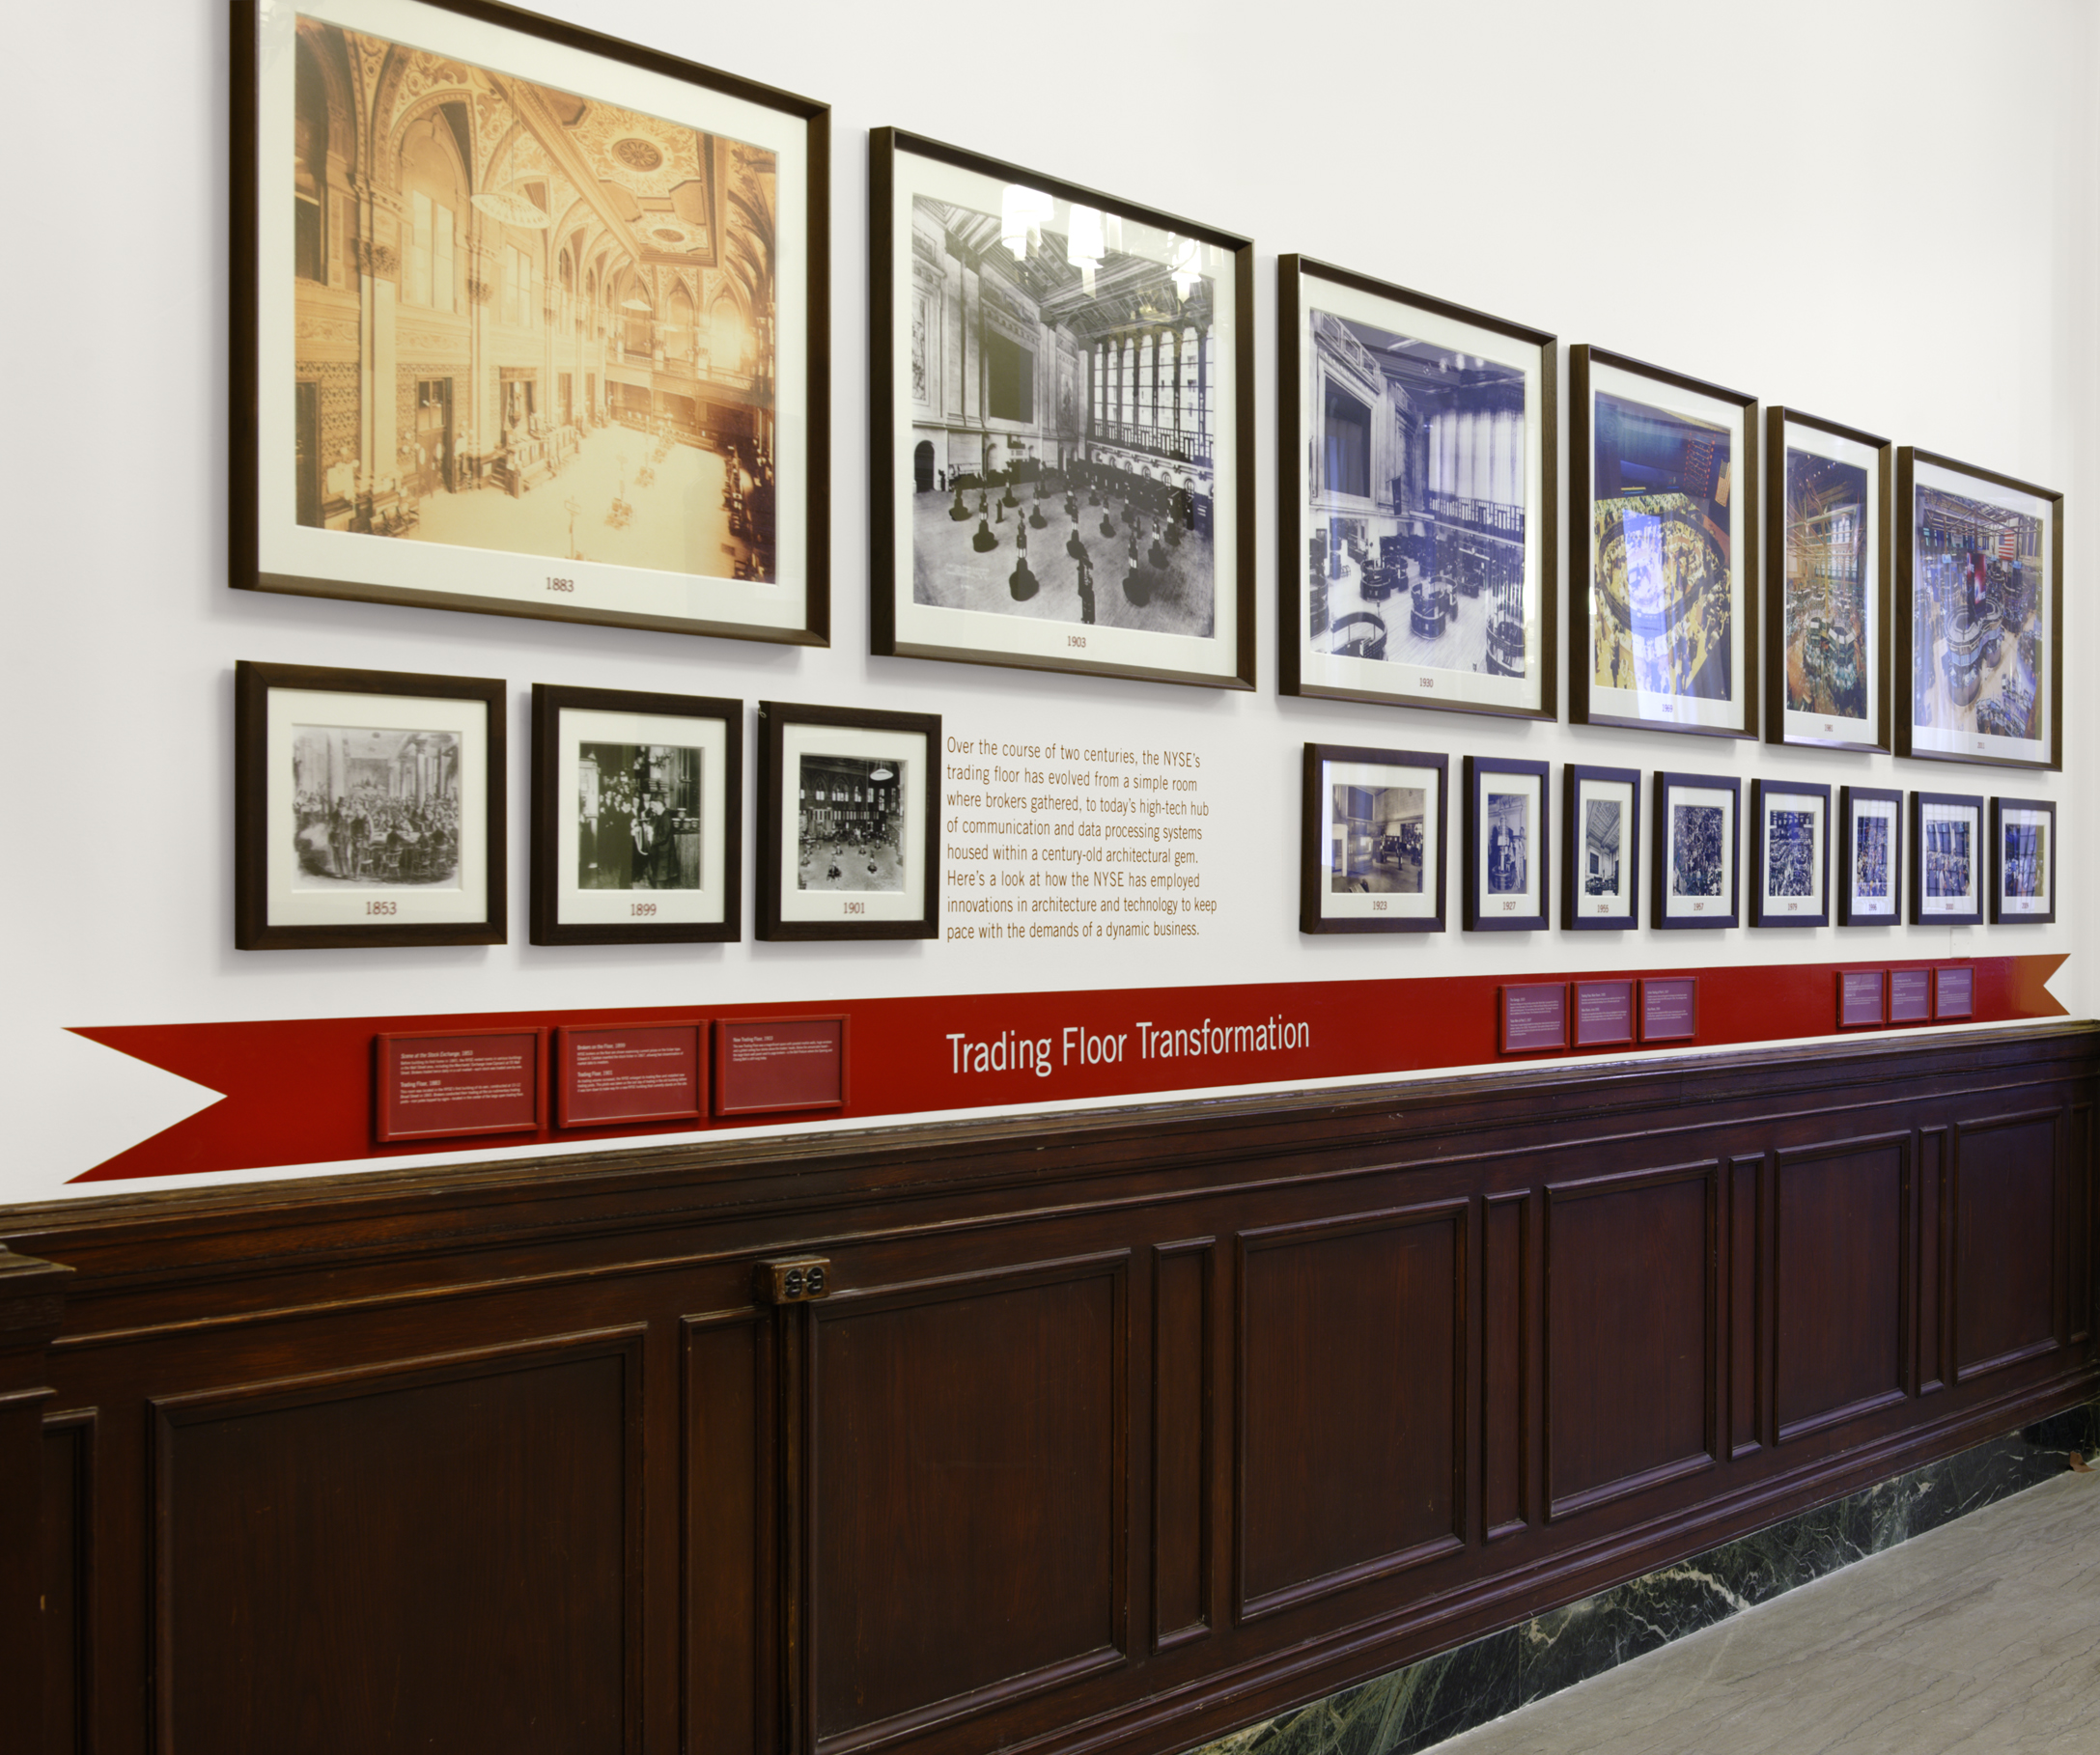 Project image 6 for NYSE Heritage Galleries, New York Stock Exchange